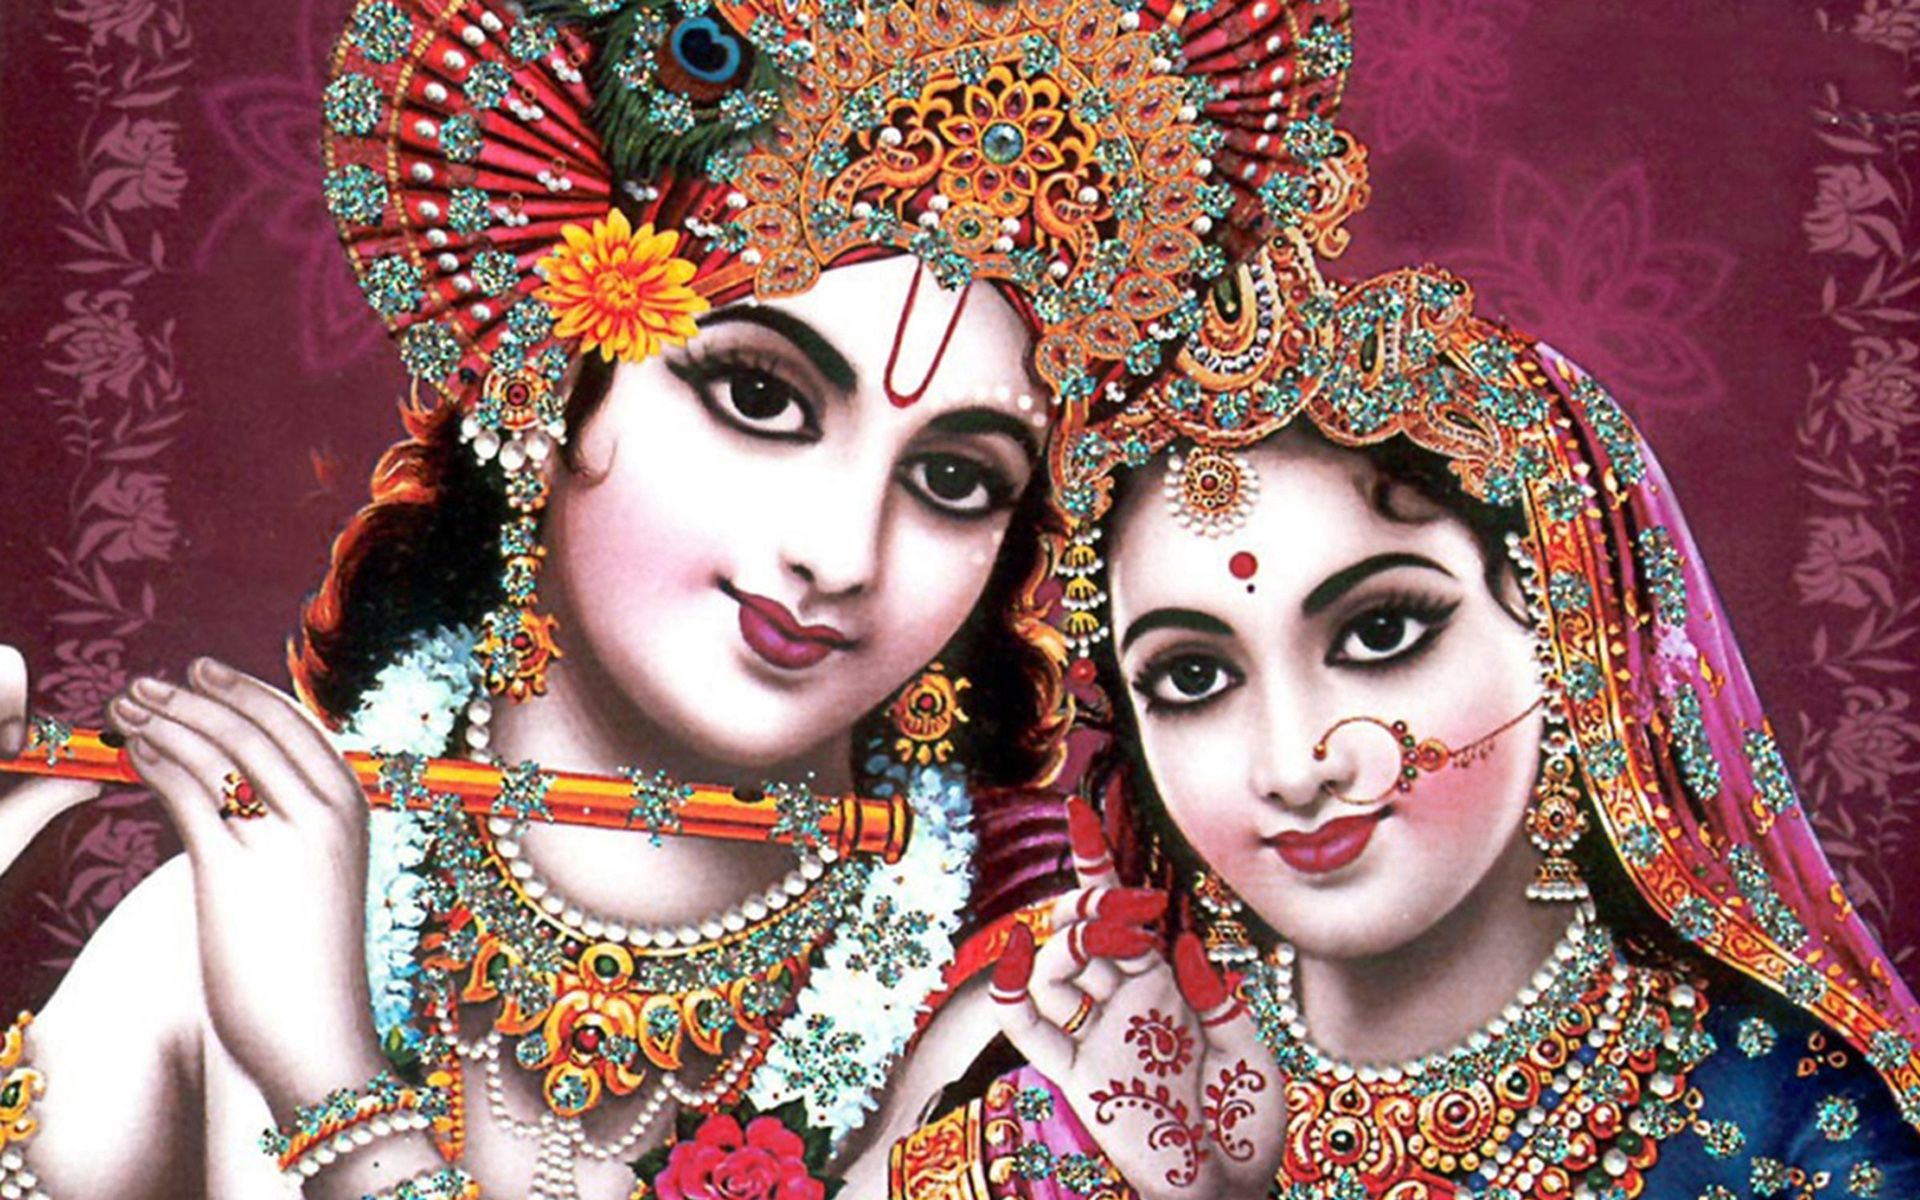 Wallpaper 4k Indian God Radha Krishna Crescent Indian Krishna